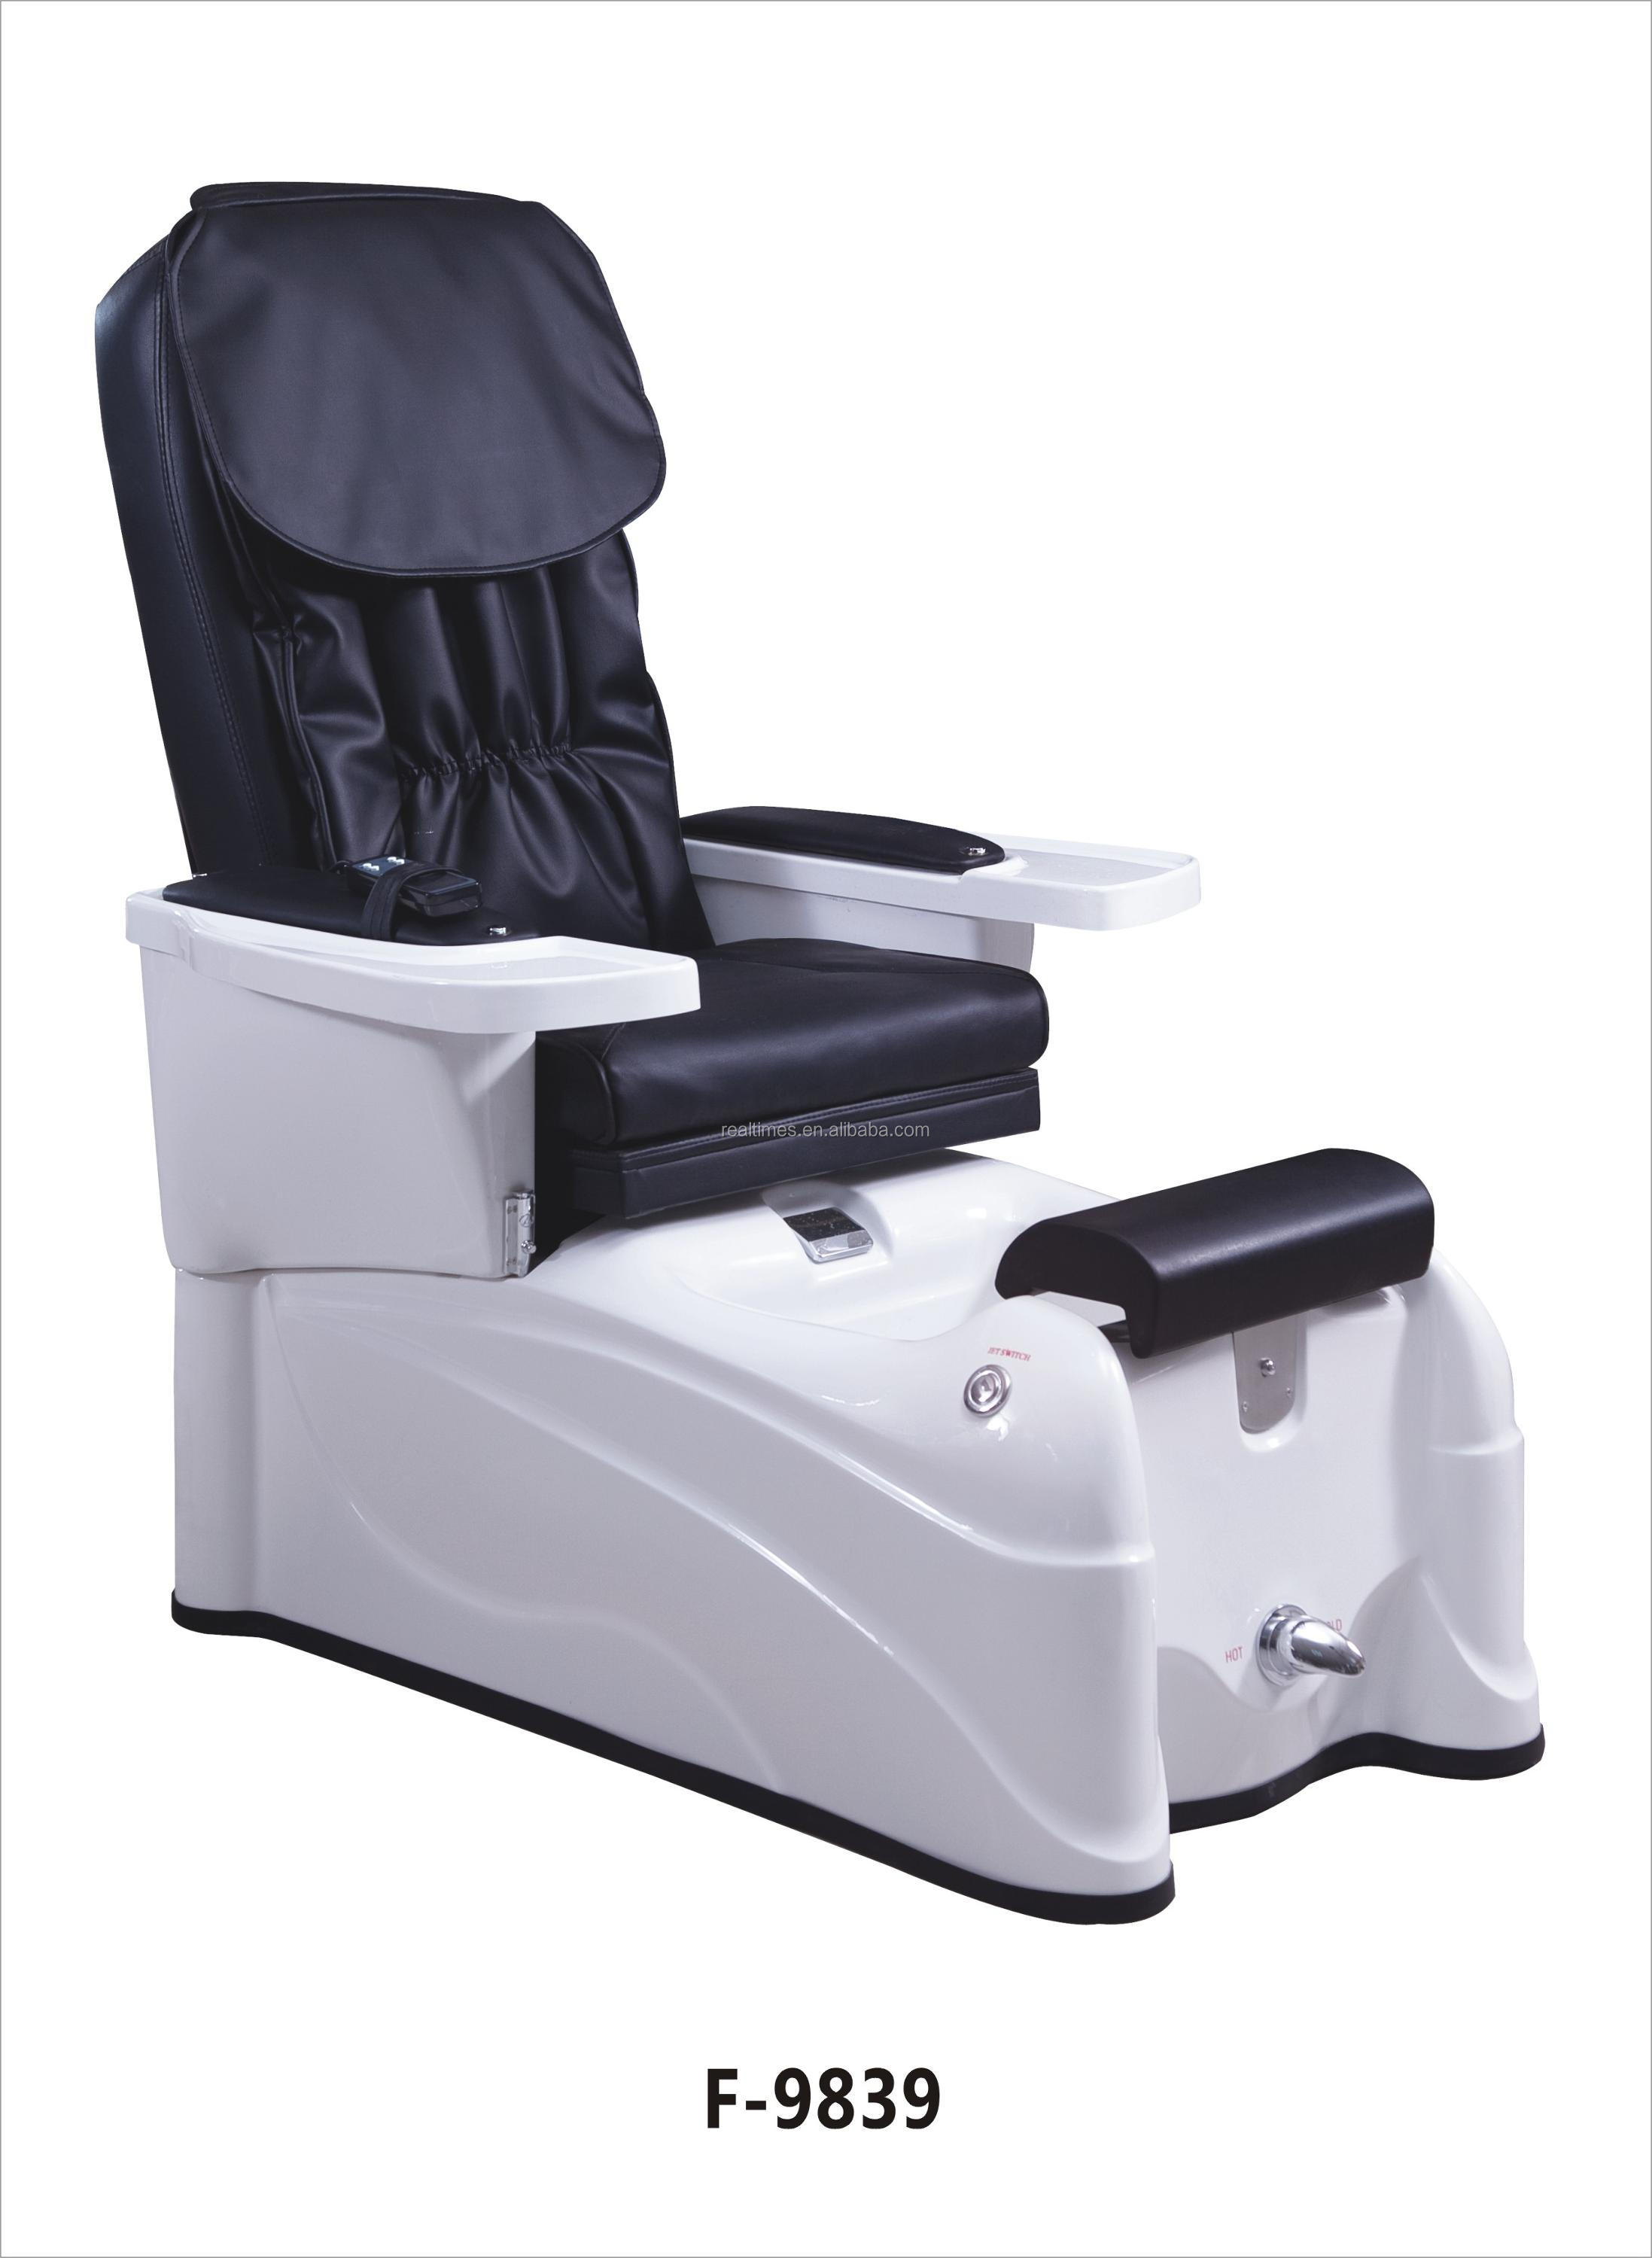 Wf 9839 Pedicure Chair Foot Spa Massage Used Pedicure Chair For